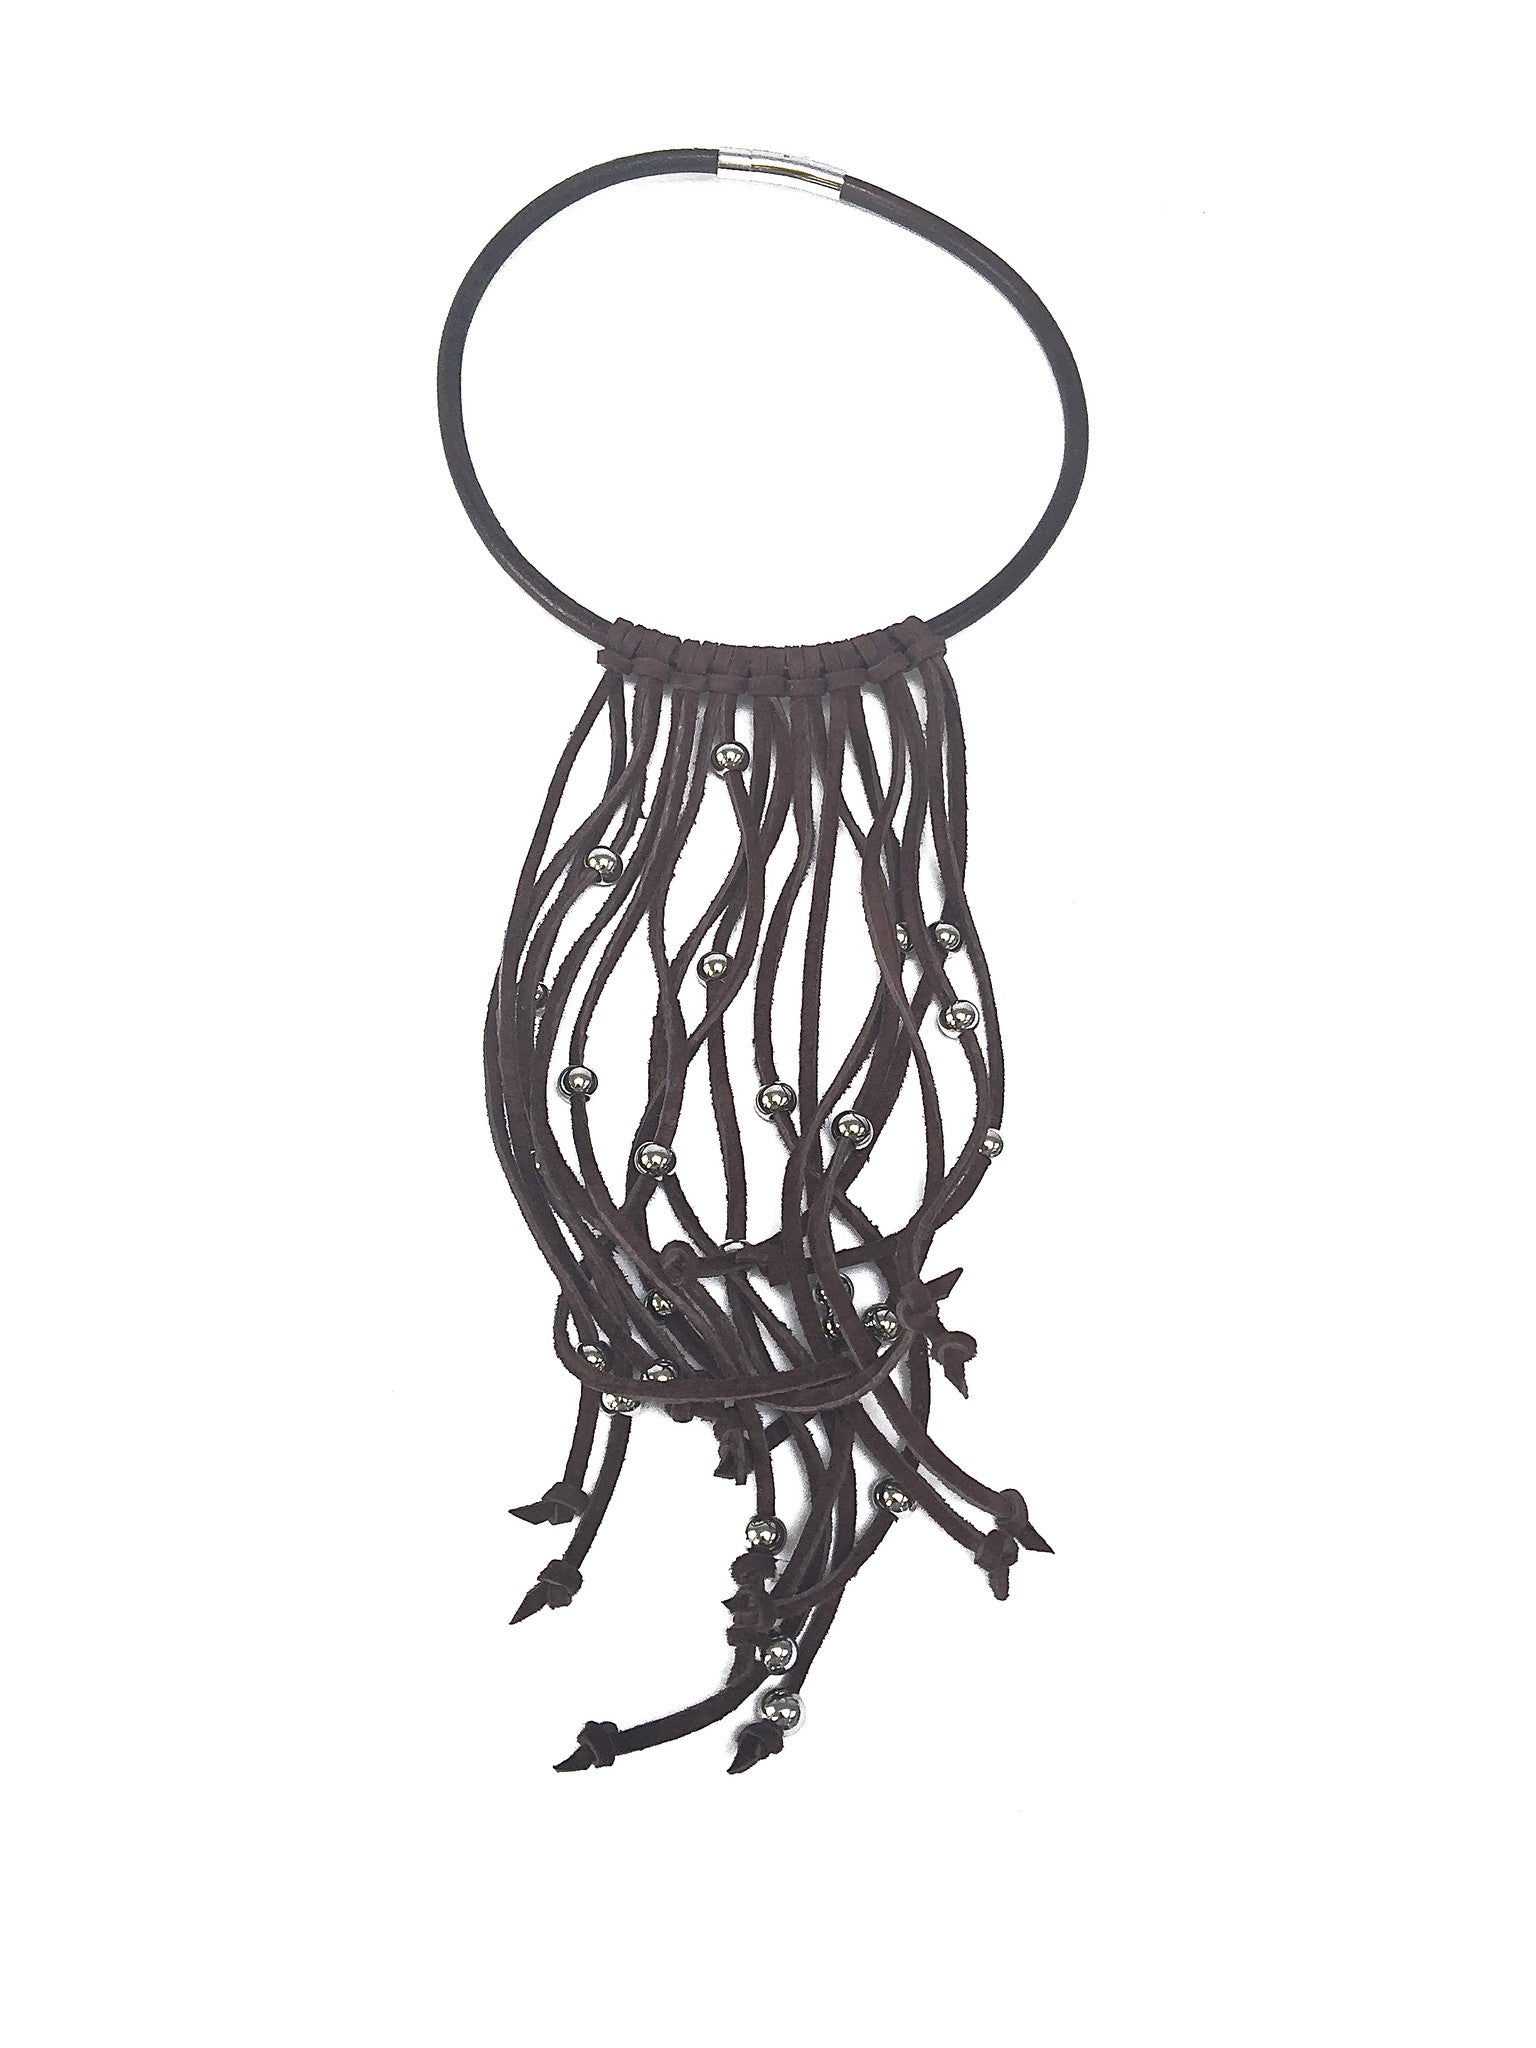 pinball necklace Brown with suede fringe by nyet jewelry.